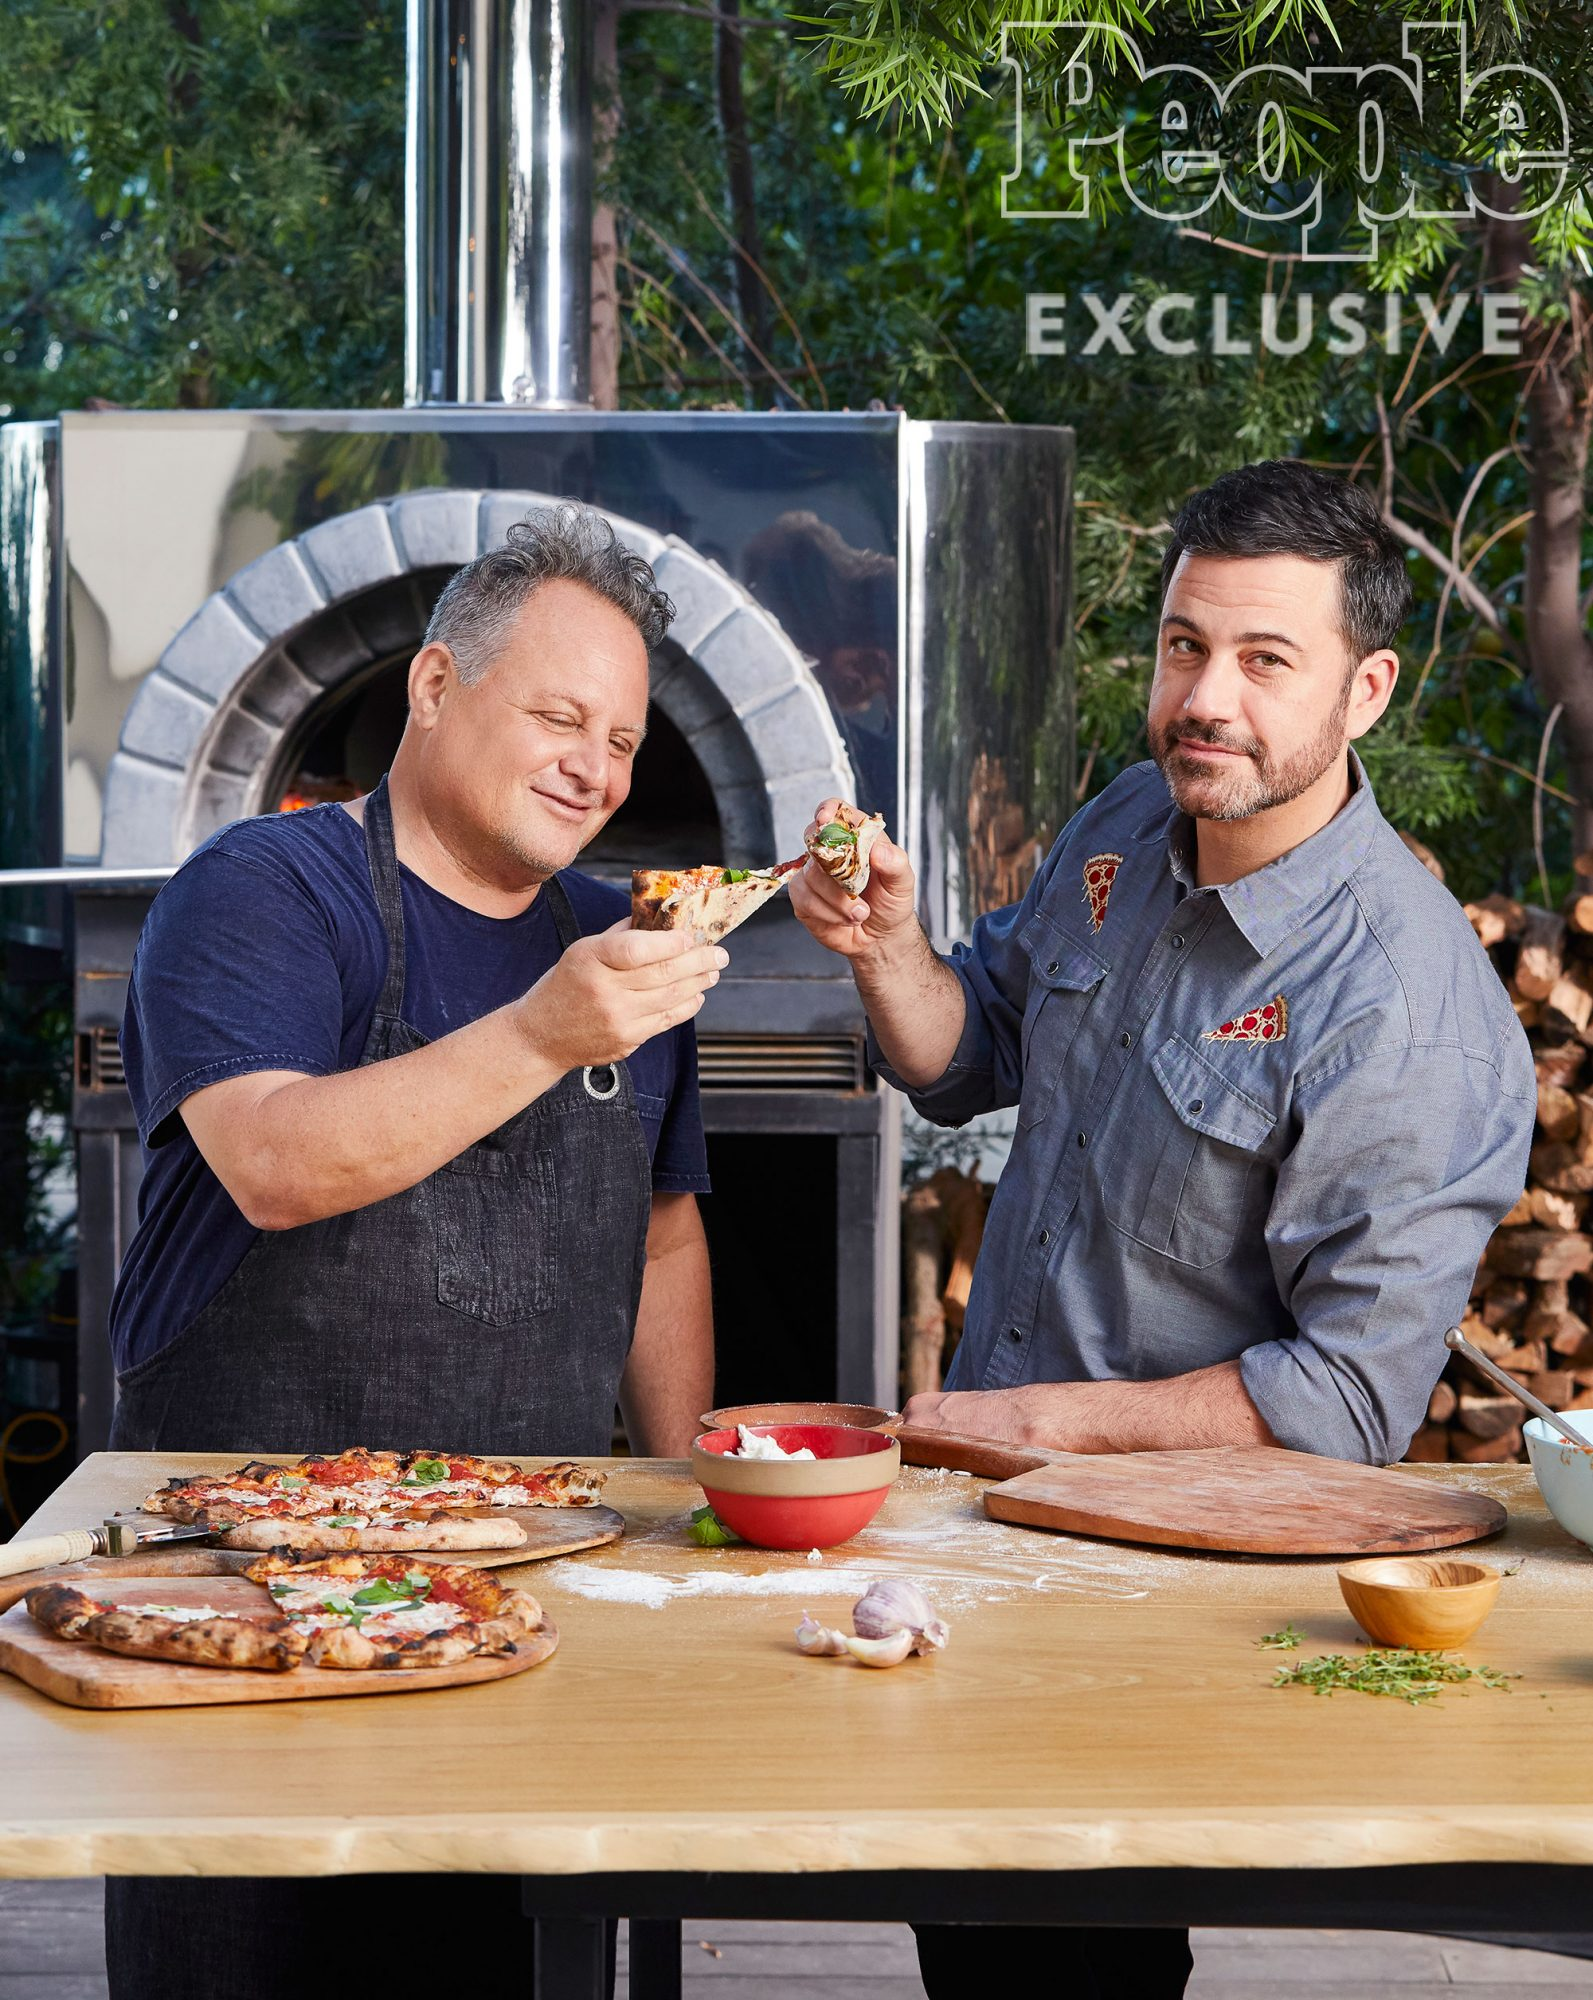 The Story Behind Jimmy Kimmel and Pizza Legend Chris Bianco's Food-Fueled Friendship